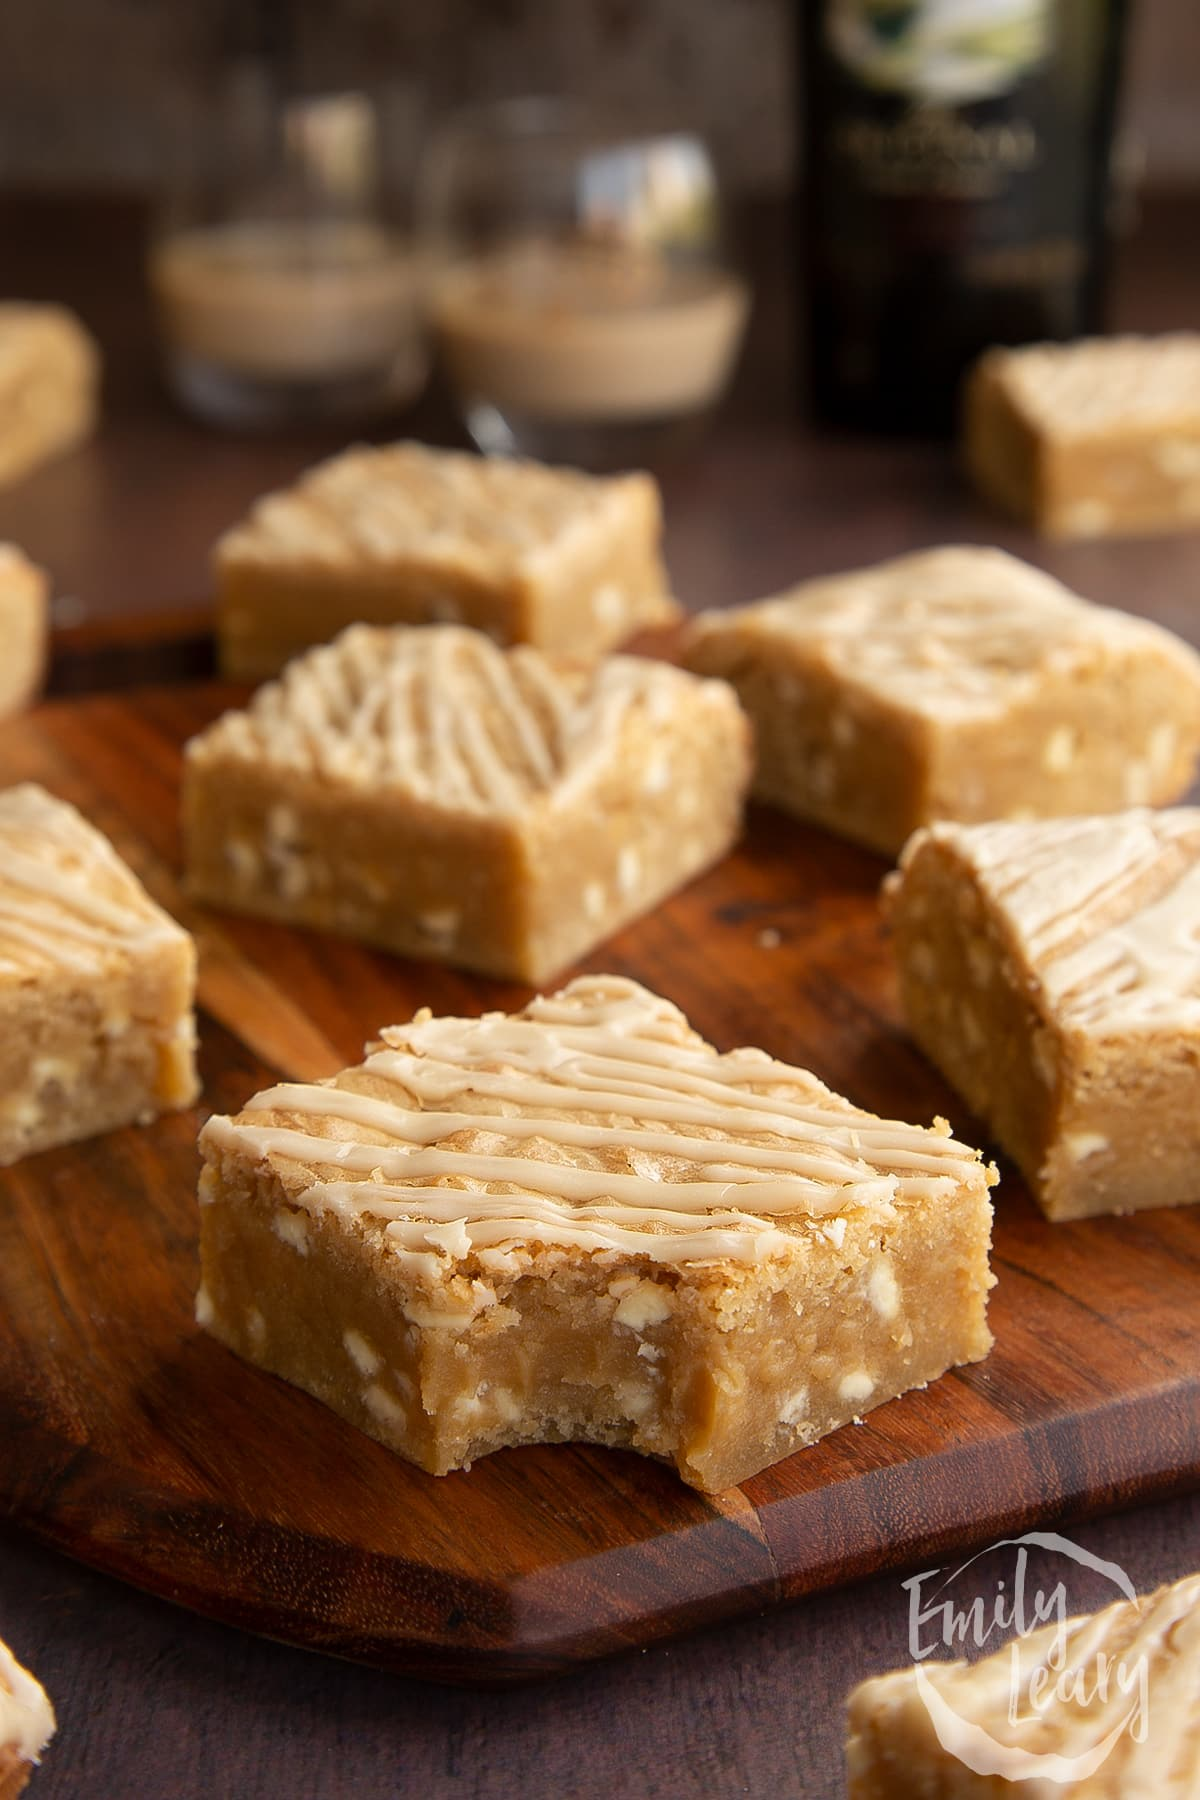 Baileys blondies on a wooden board. One has a bite out of it.